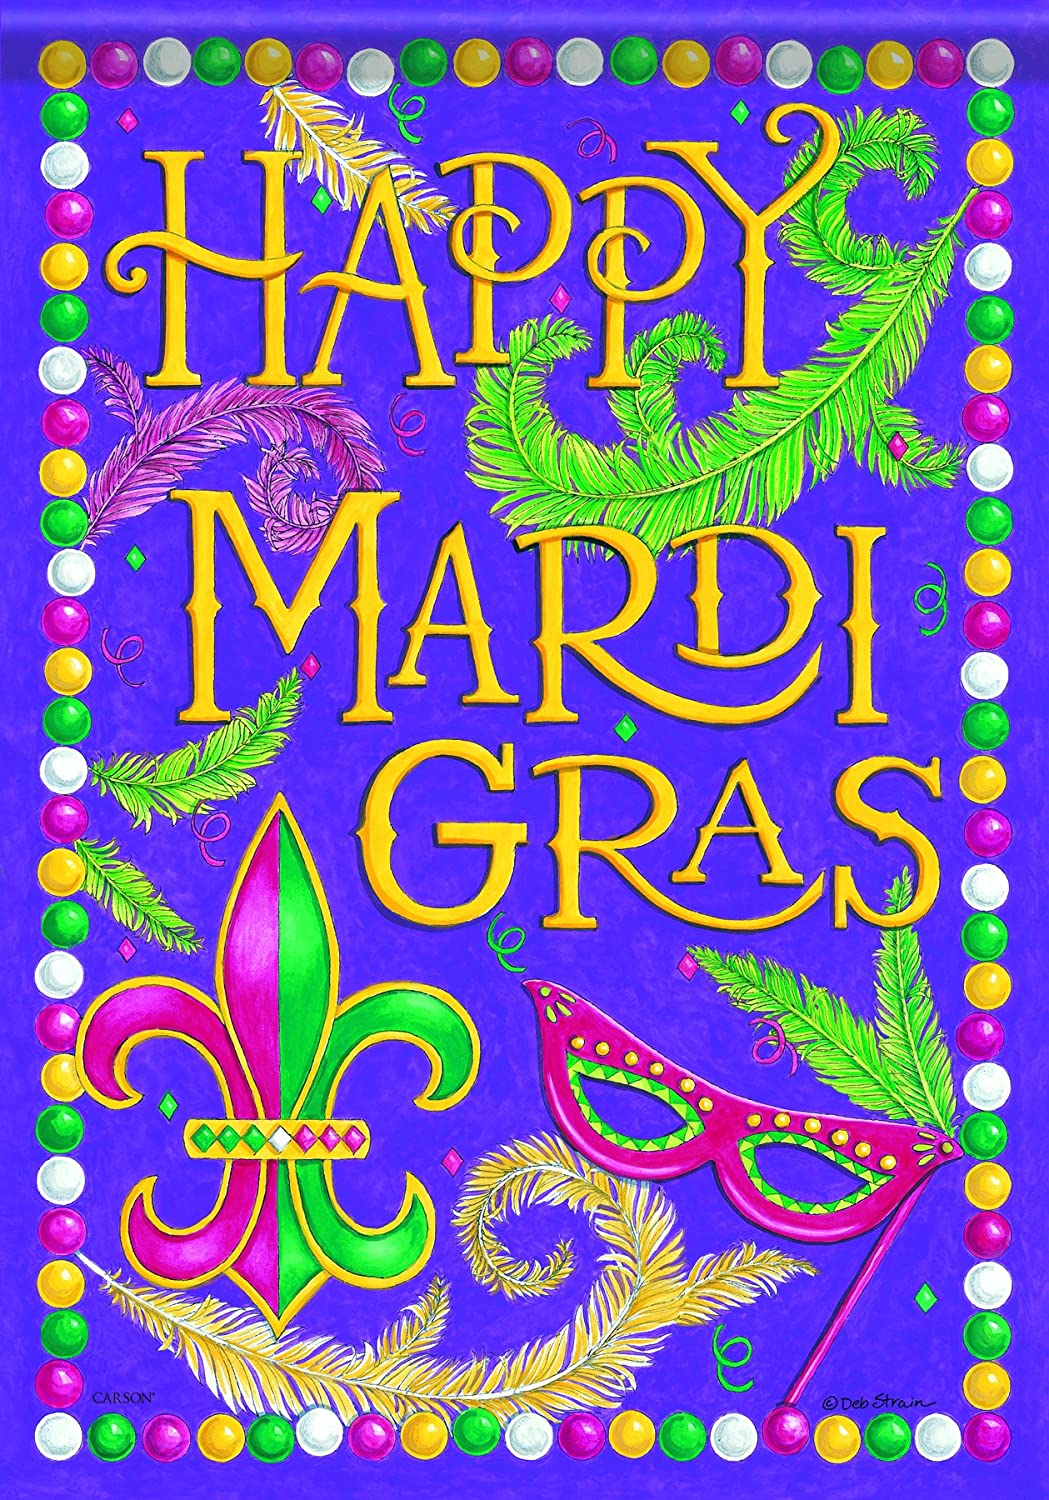 Carson Home Accents Flagtrends Classic Garden Flag, Happy Mardi Gras